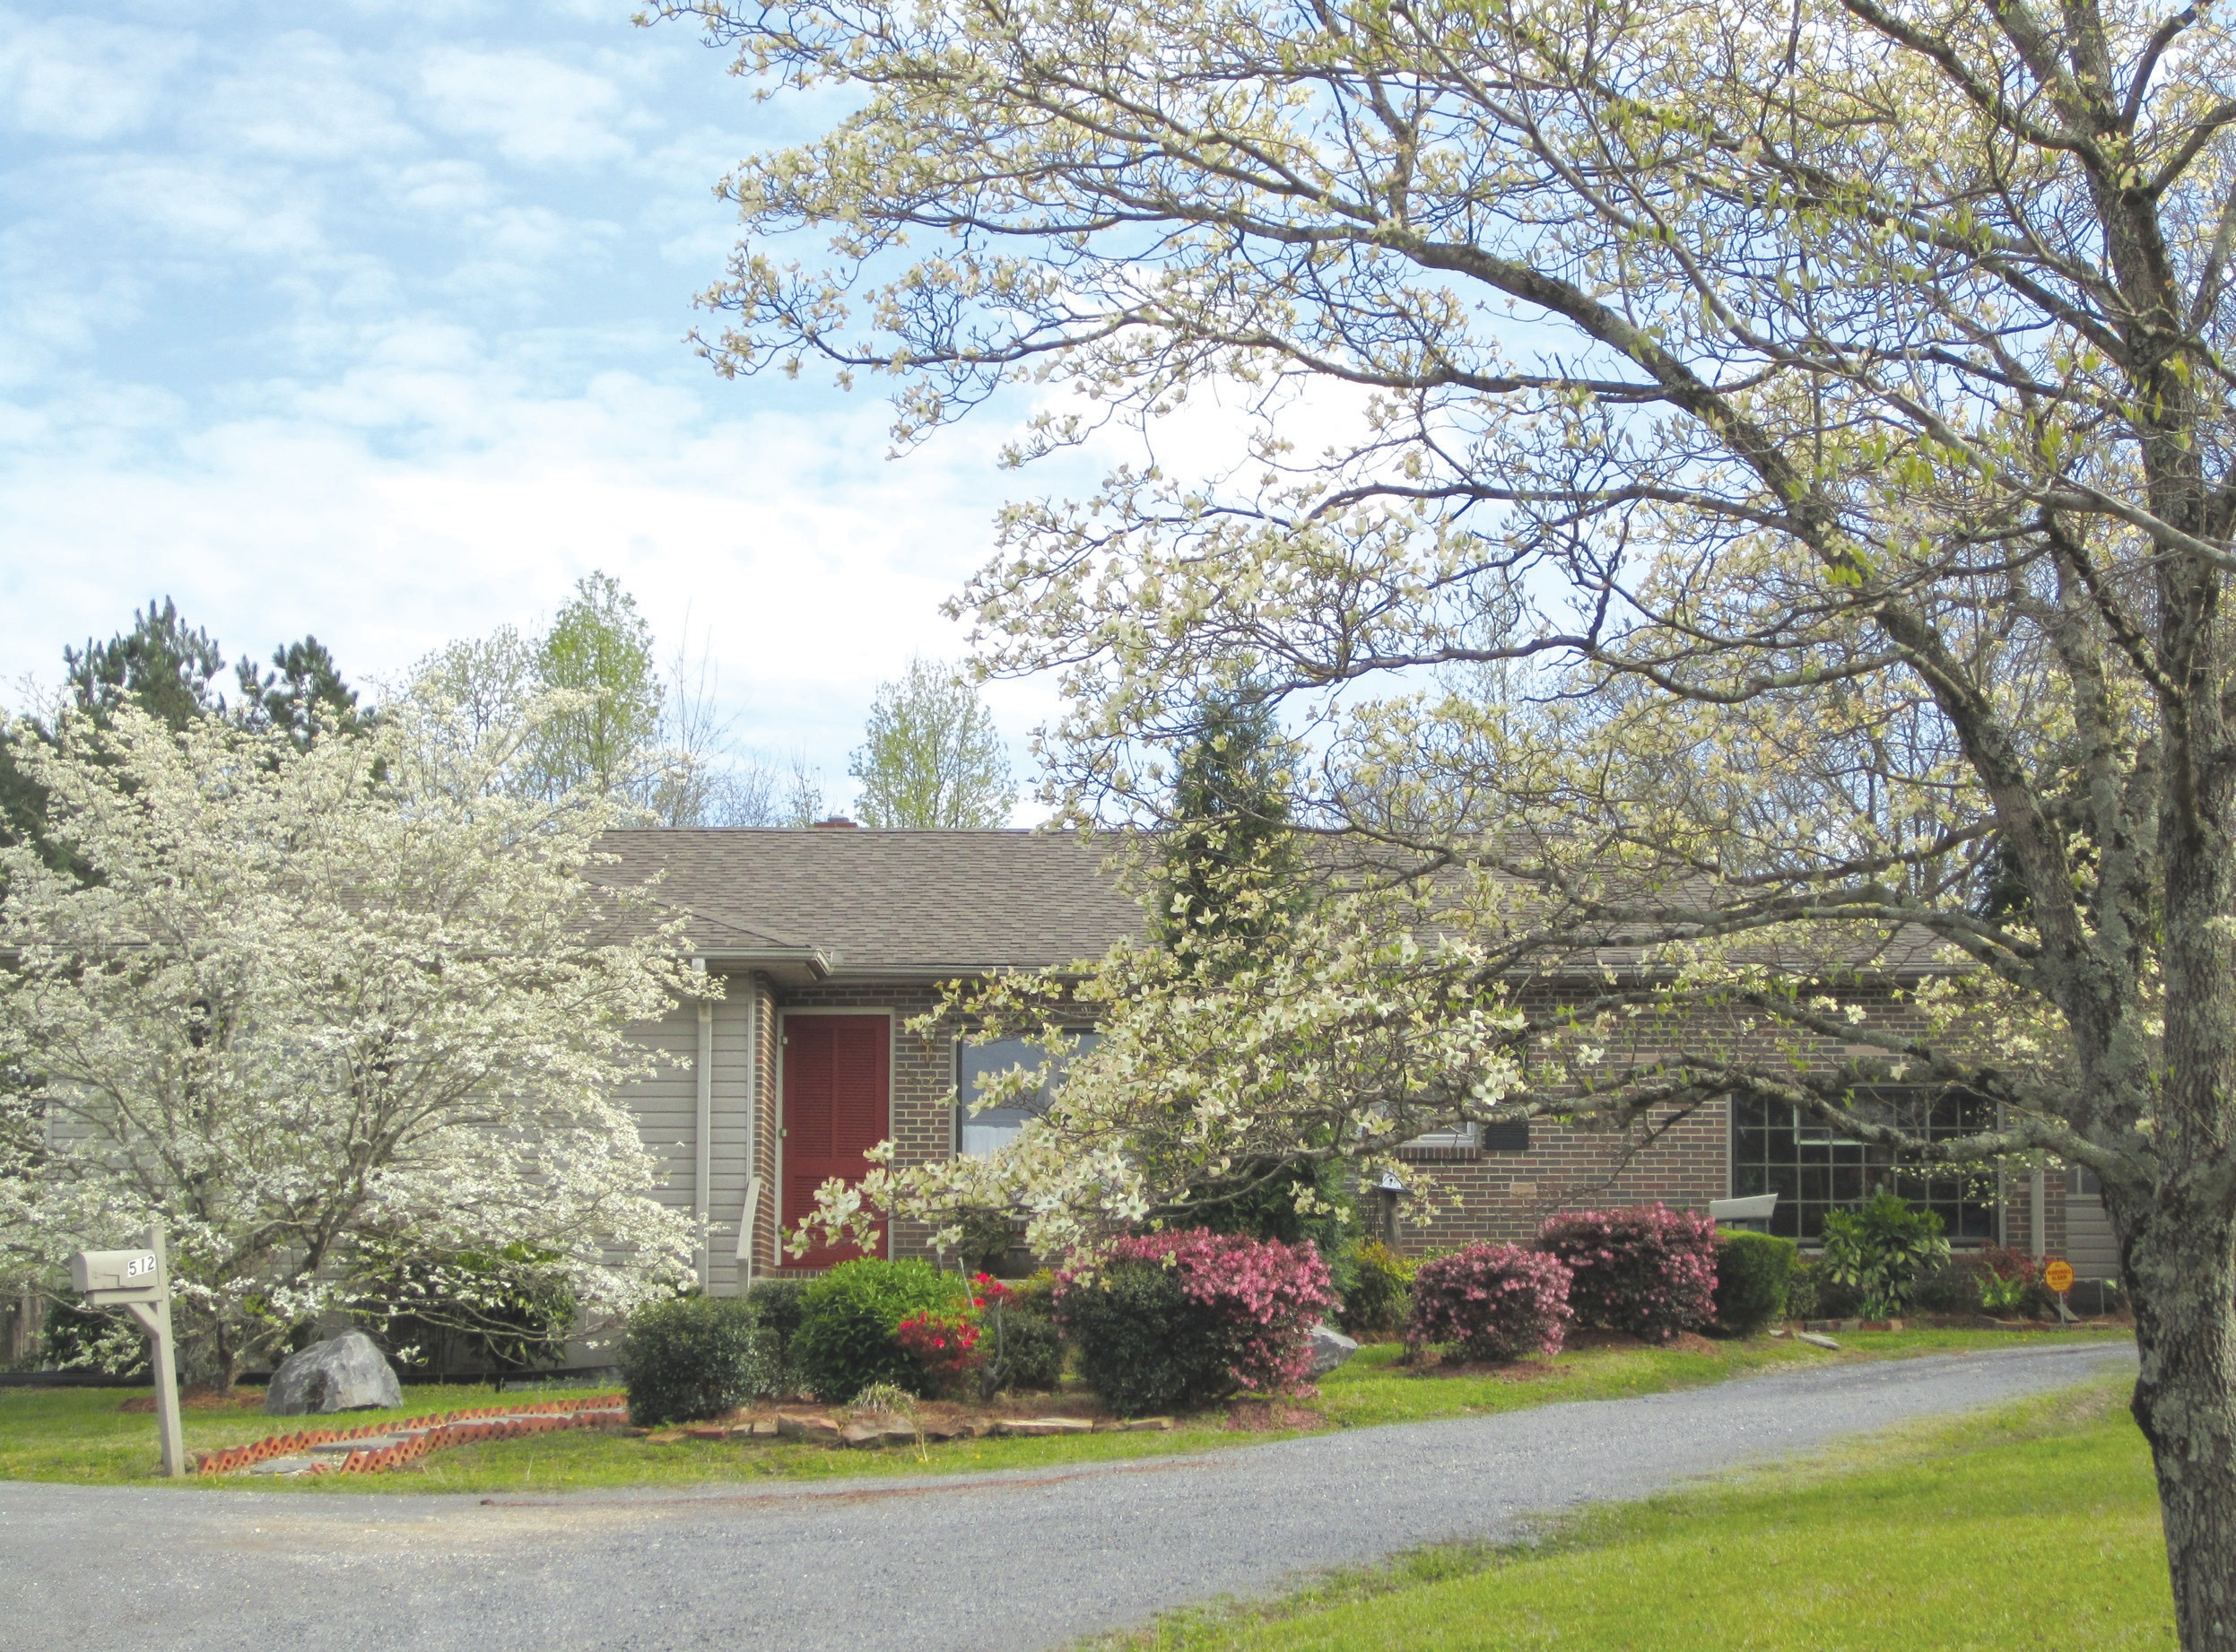 The dozen dogwoods surrounding the home of Ramona Harmon of Sellers Avenue were magnificent, but were so widely scattered over an acre or so of front lawn that the photo does them no justice. Out back, however, Mrs. Harmon exhibits a Bridal Wreath plant (inset) that's in the running for world champ. It was transplanted from her mother's homeplace in Susan Moore.